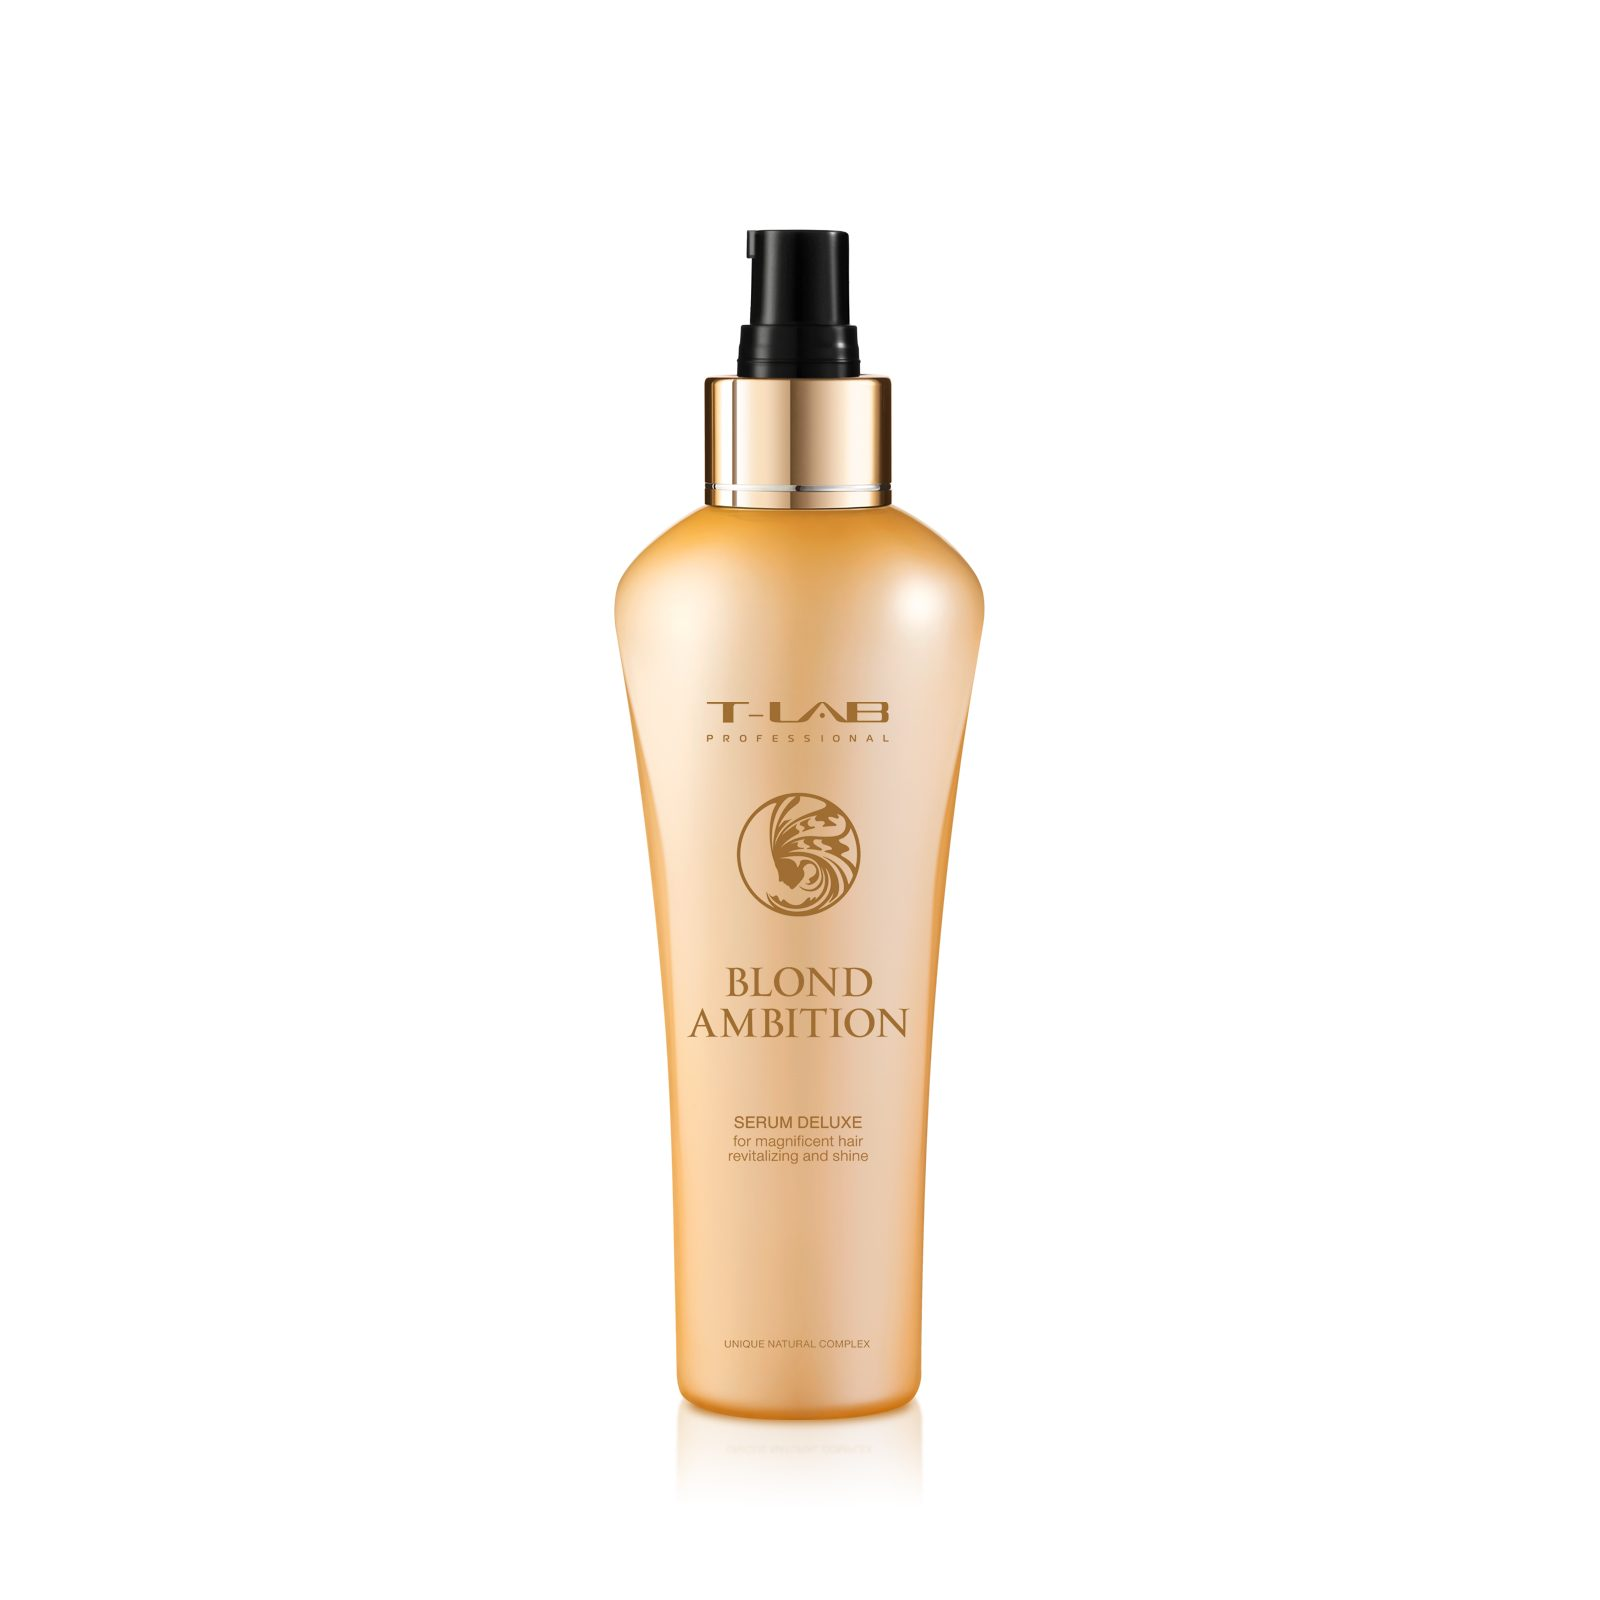 BLOND AMBITION SERUM DELUXE 130 ml